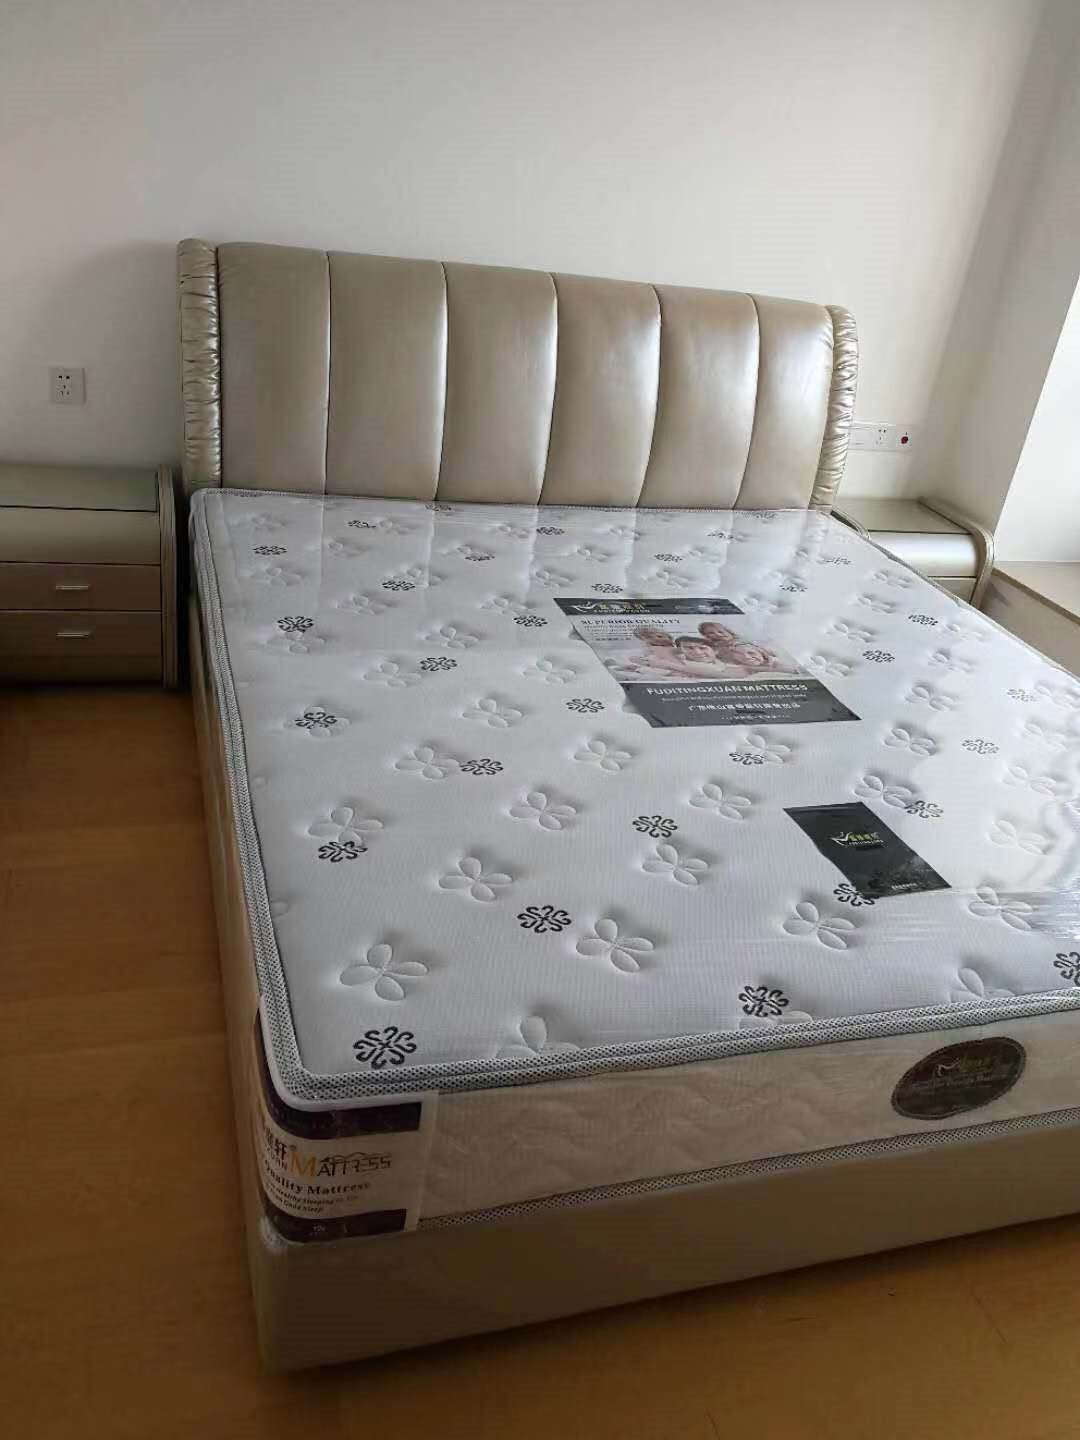 *MG* Washable Very Firm Palm Mattress *5 size in stock